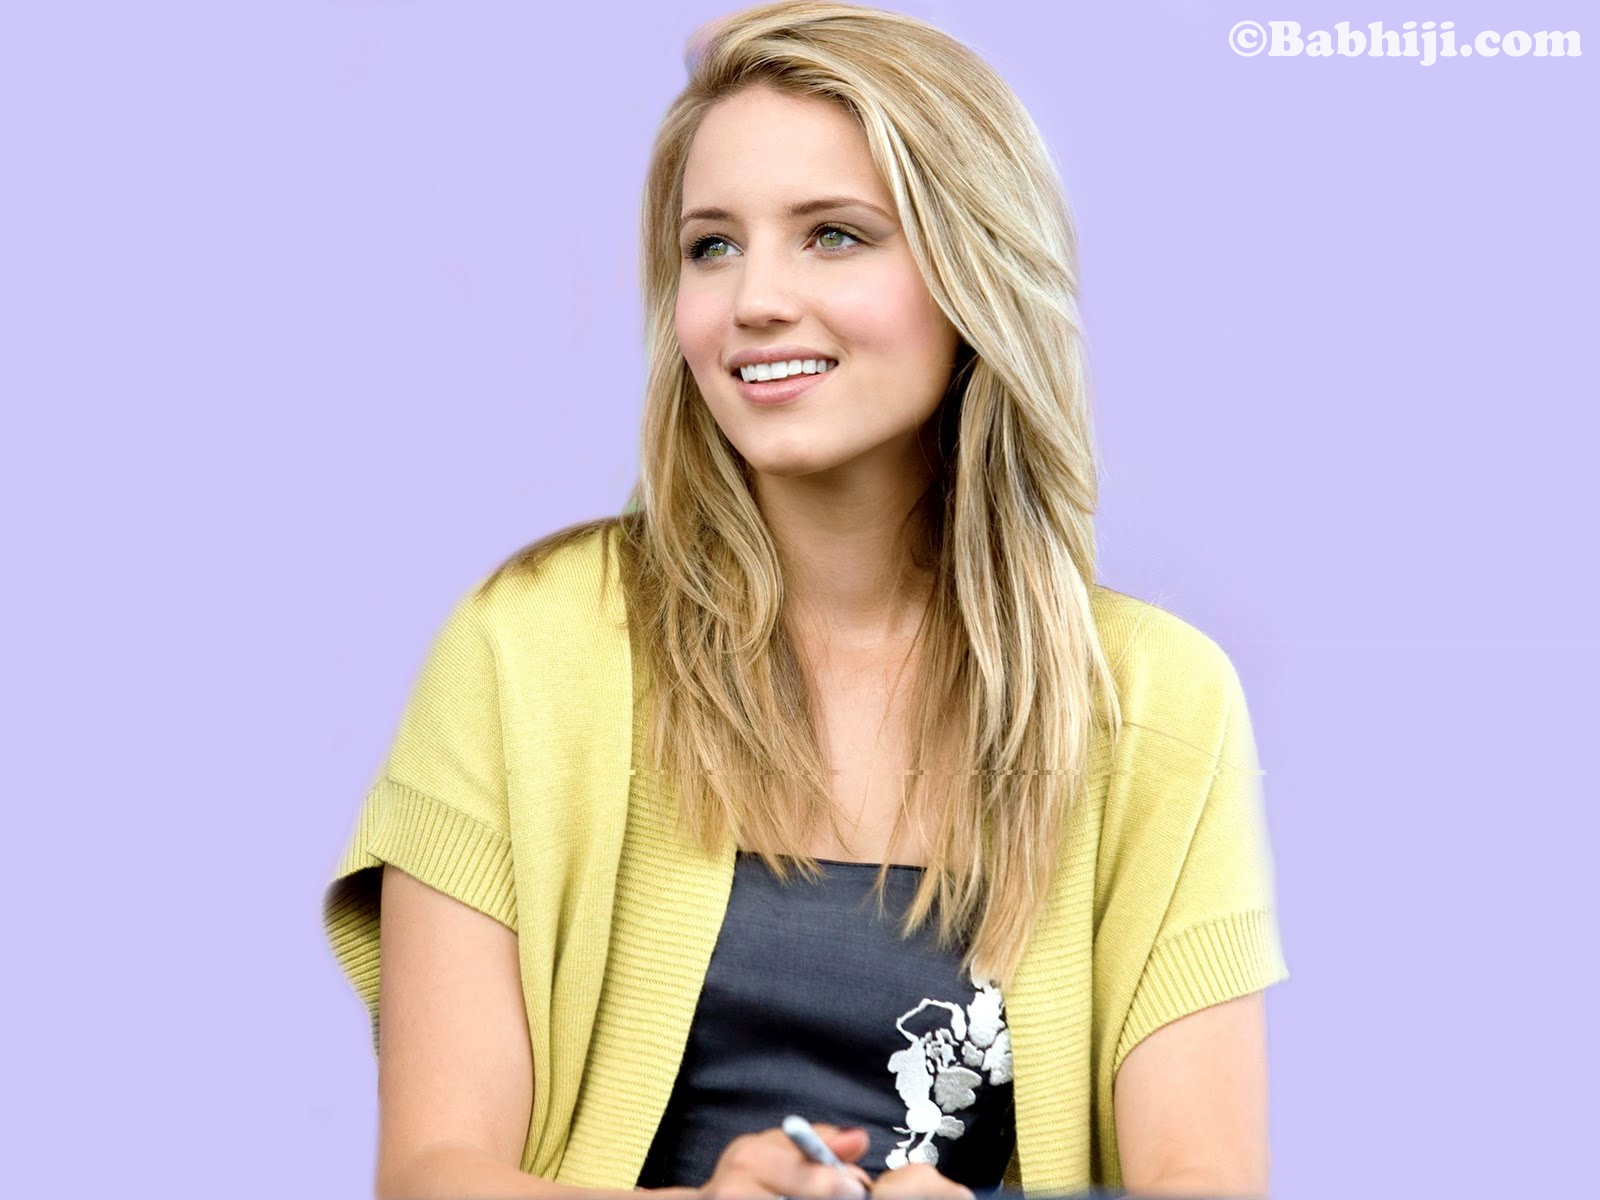 Dianna Agron, Dianna Agron Wallpaper, Dianna Agron Photo, Dianna Agron Images